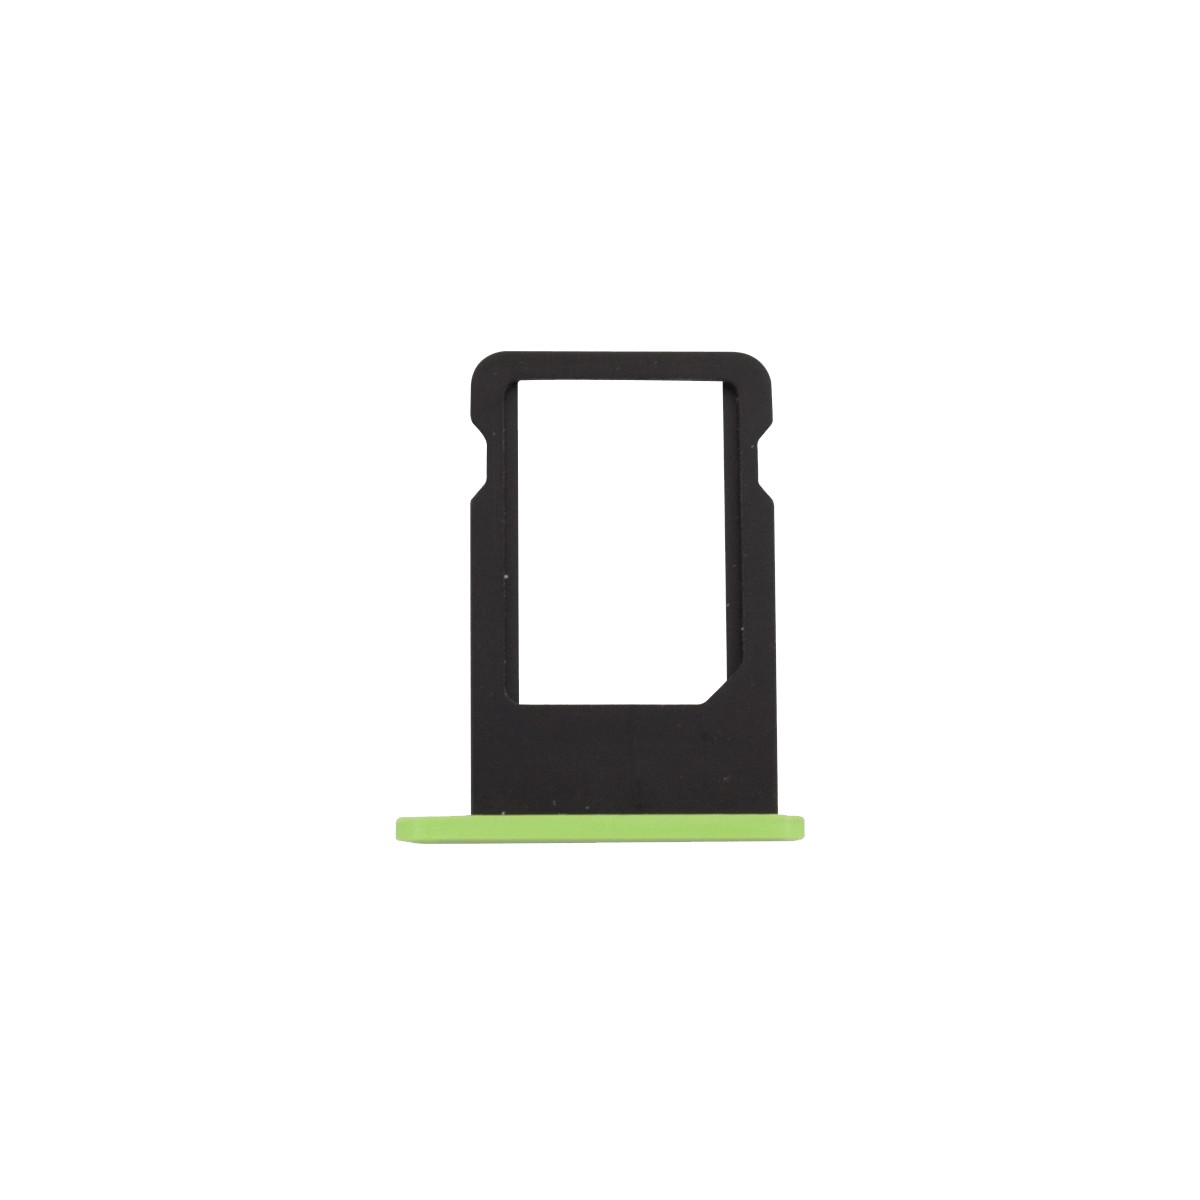 iPhone 5c Green SIM Card Tray Replacement